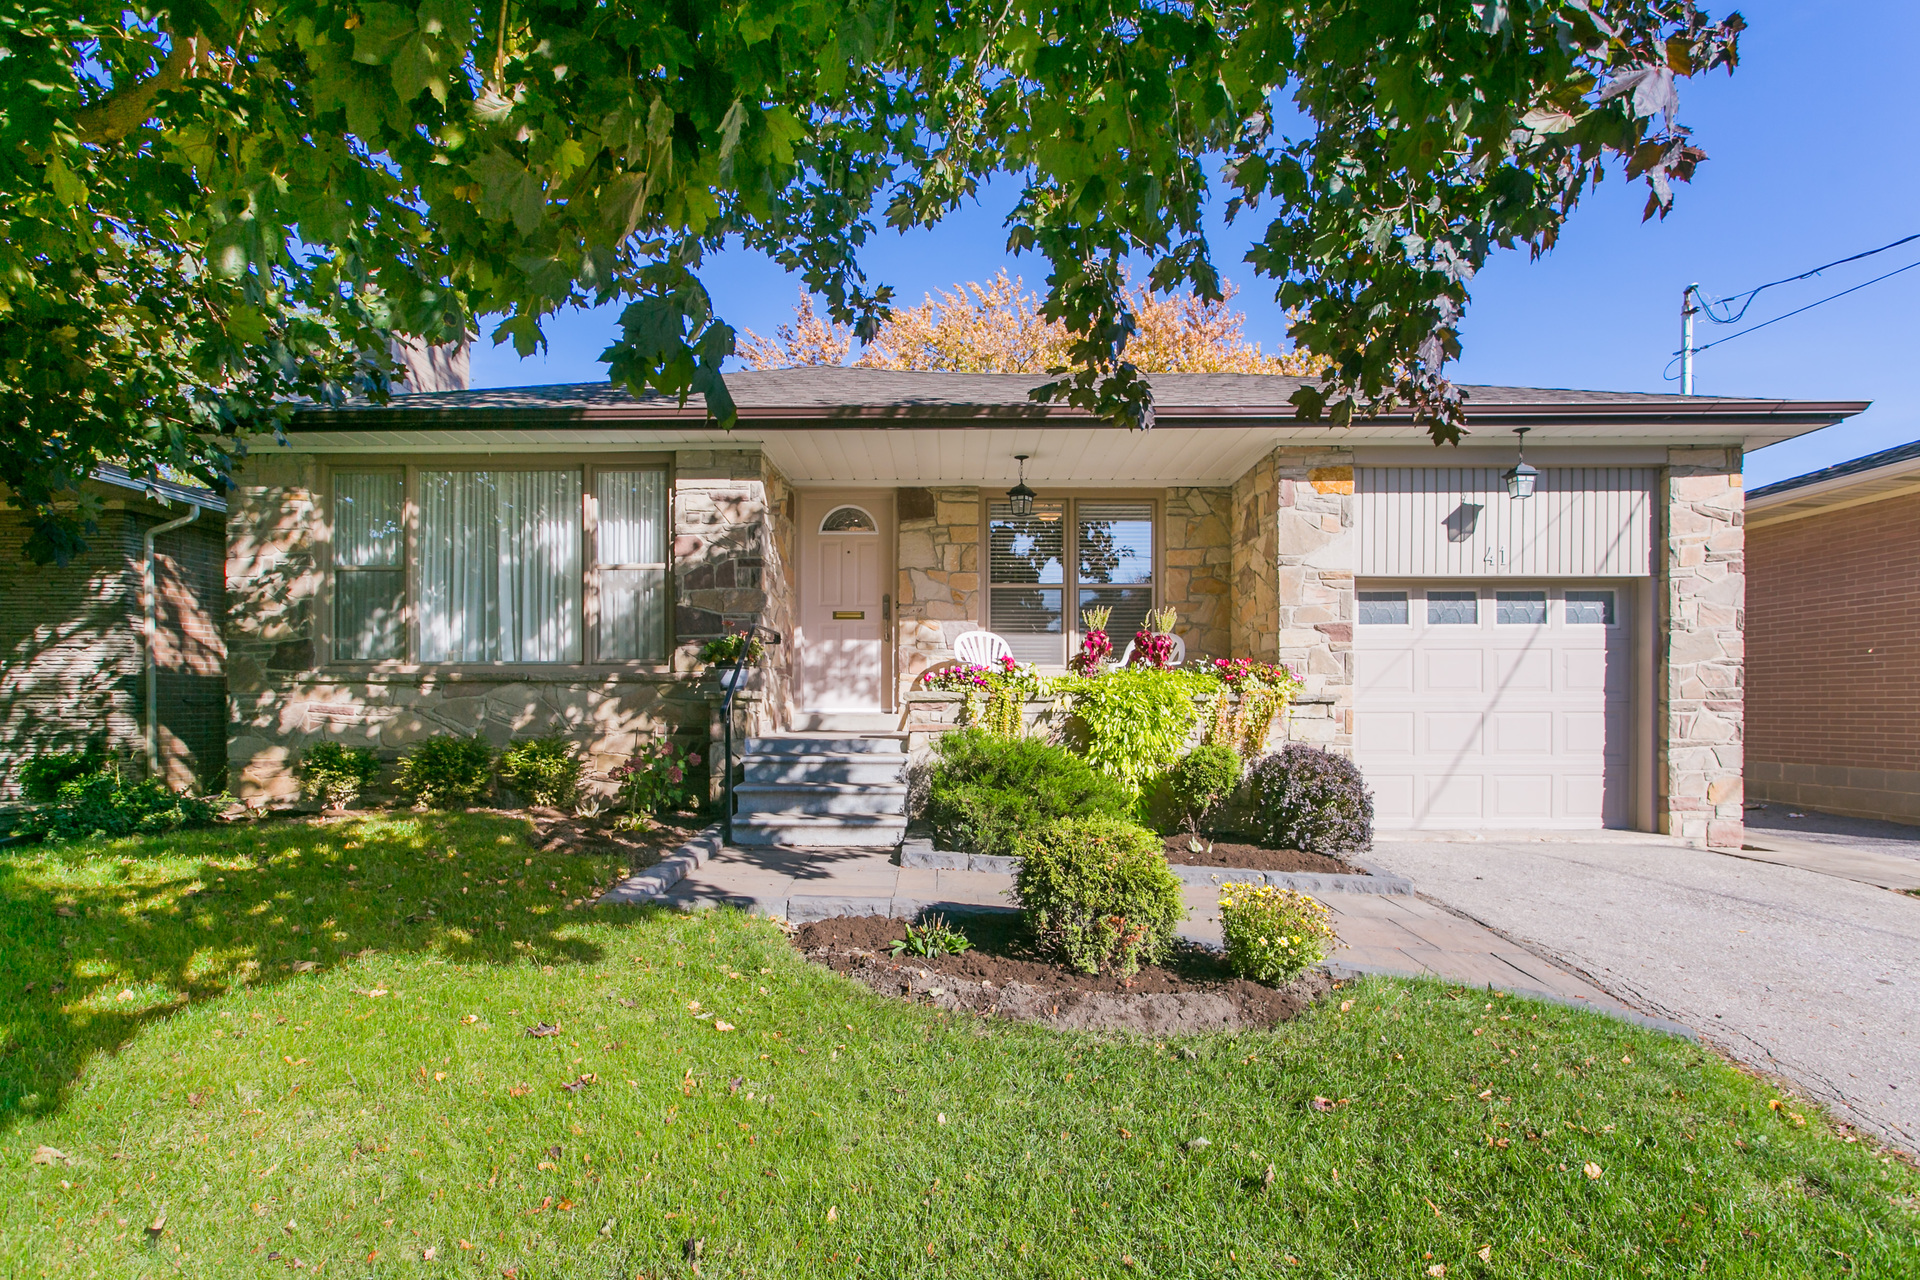 41 Heathview Avenue, Bayview Village, Toronto